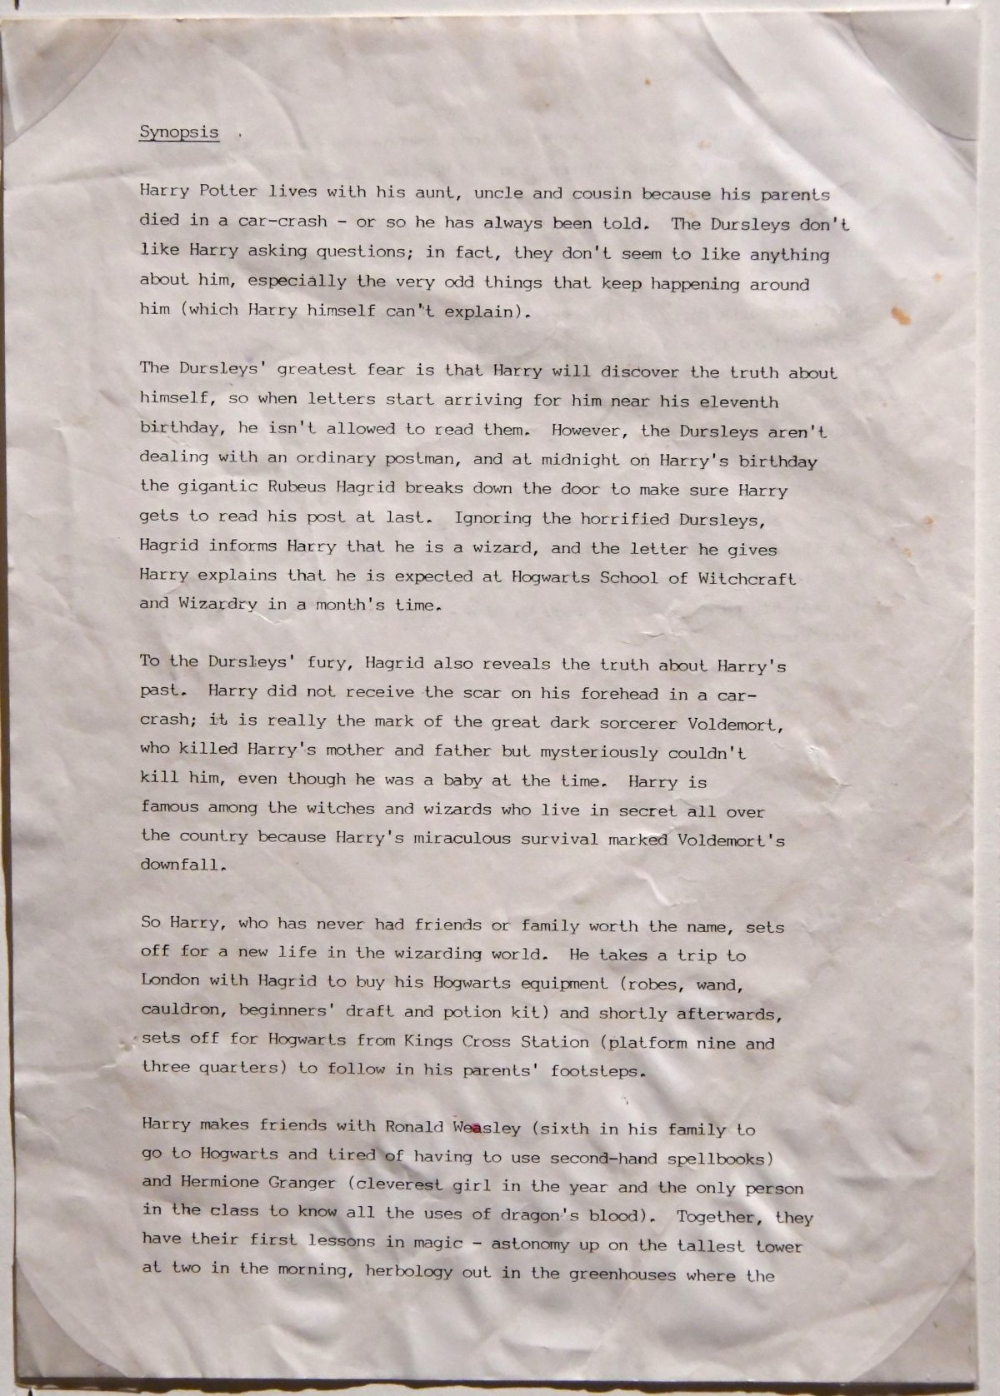 J K Rowling Sketches And Plot Outlines For Harry Potter Flashbak First Harry Potter Rowling Plot Outline [ 1396 x 1000 Pixel ]